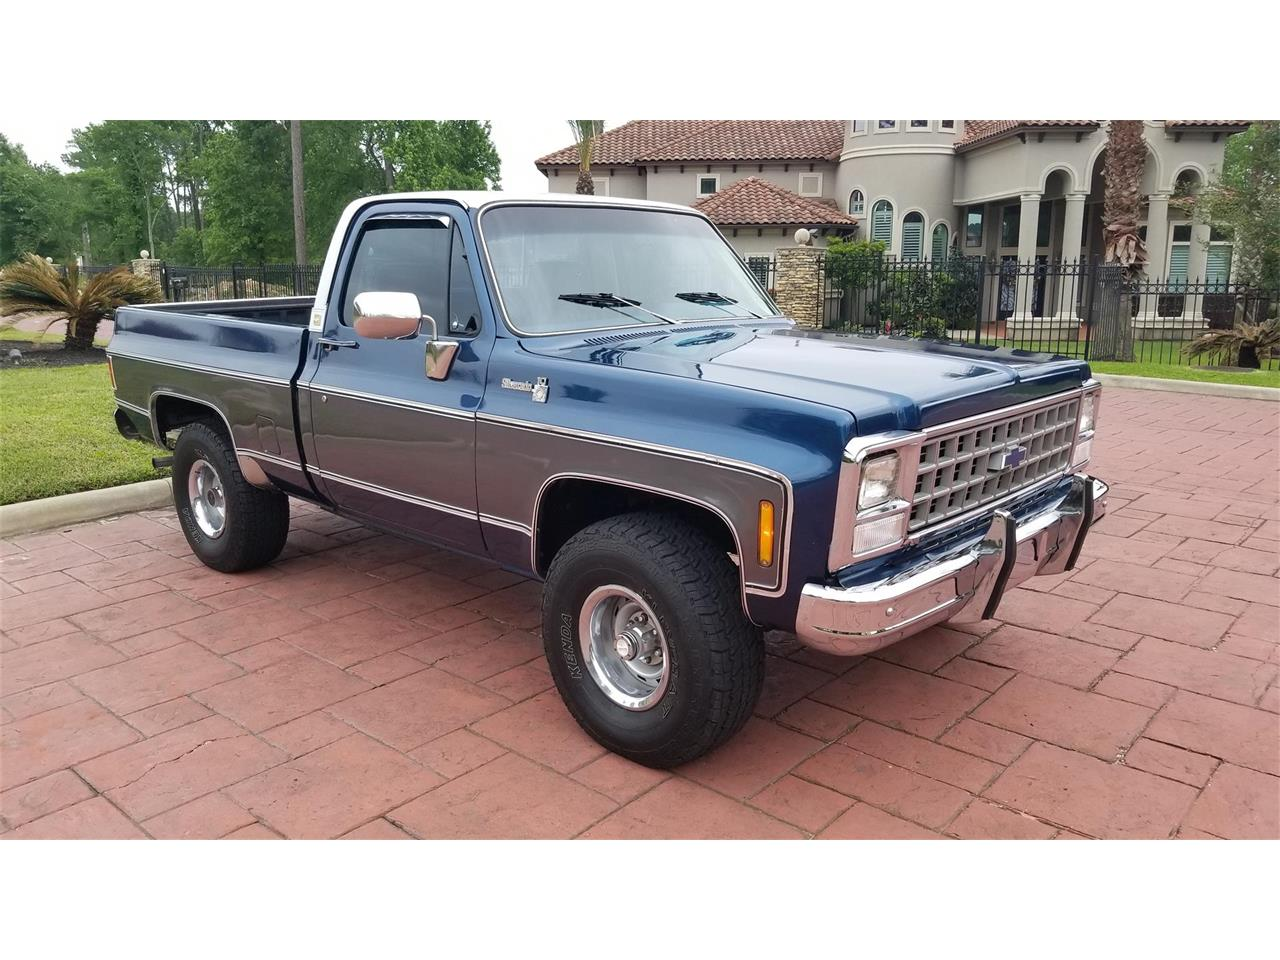 1980 Chevrolet K 10 For Sale In Conroe Tx Classiccarsbay Com